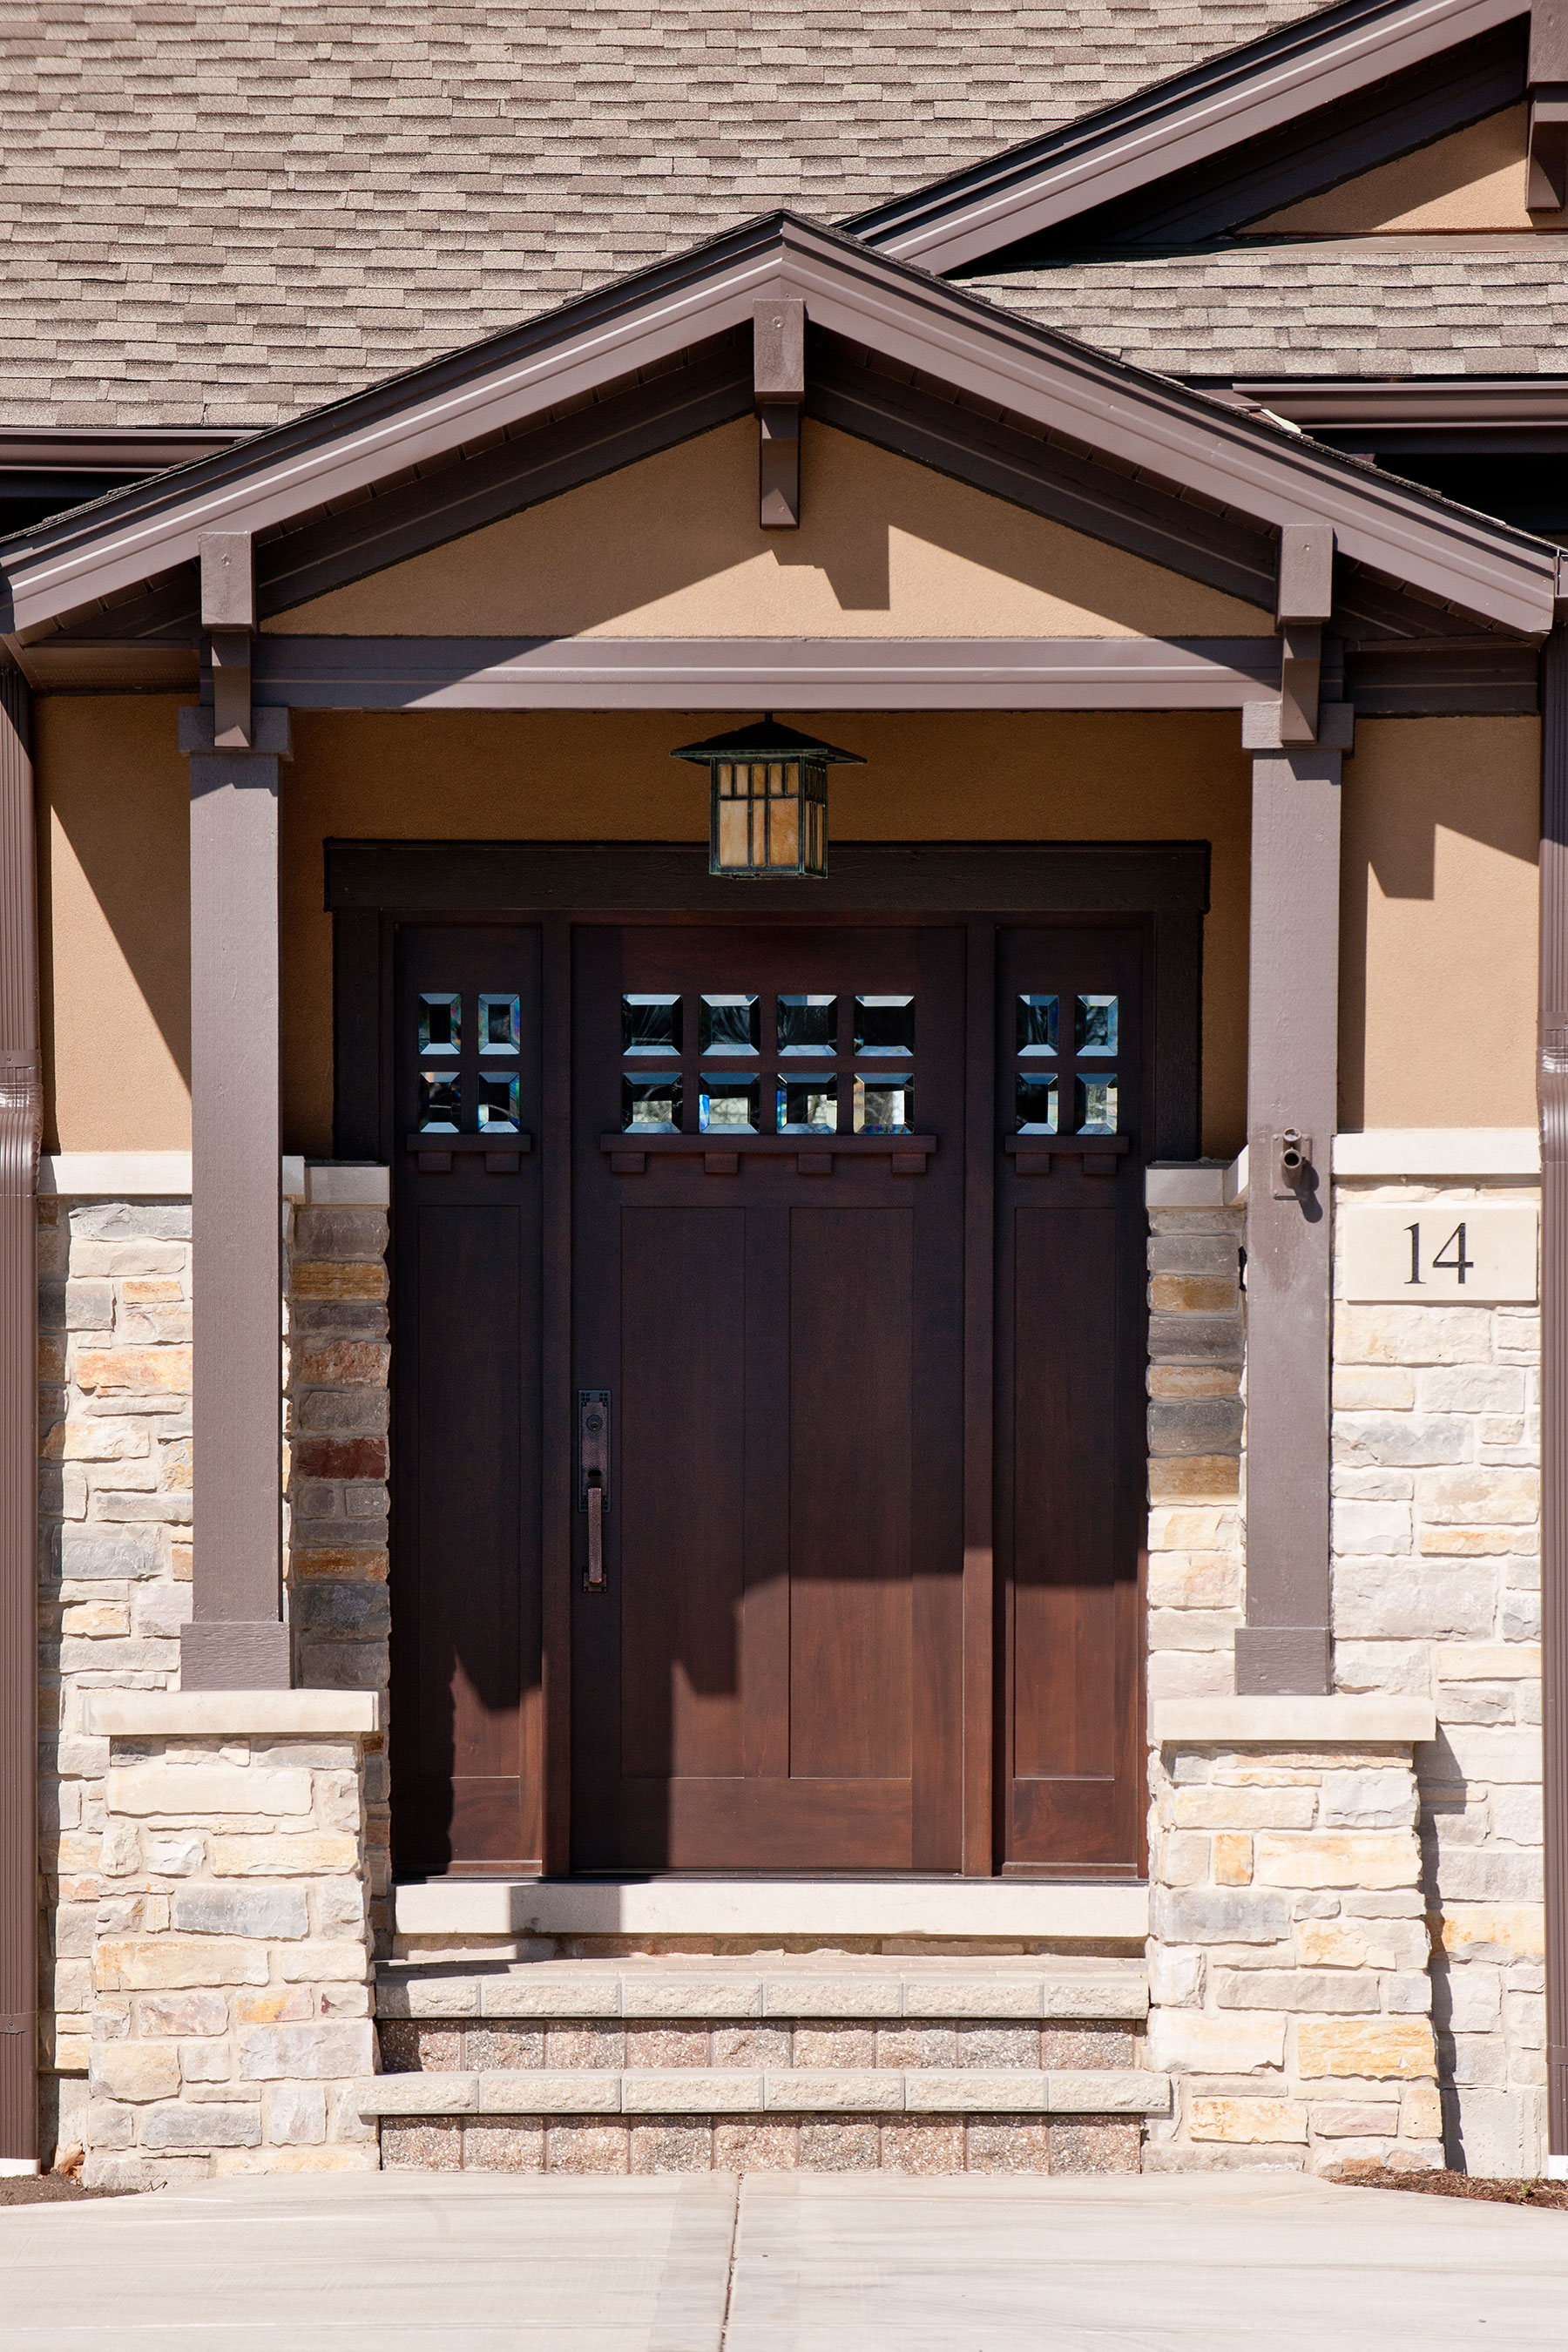 Custom Wood Front Entry Doors | Craftsman Style Custom Front Entry Wood Door DB-311 2SL CST - Glenview Doors - Custom Doors in Chicago